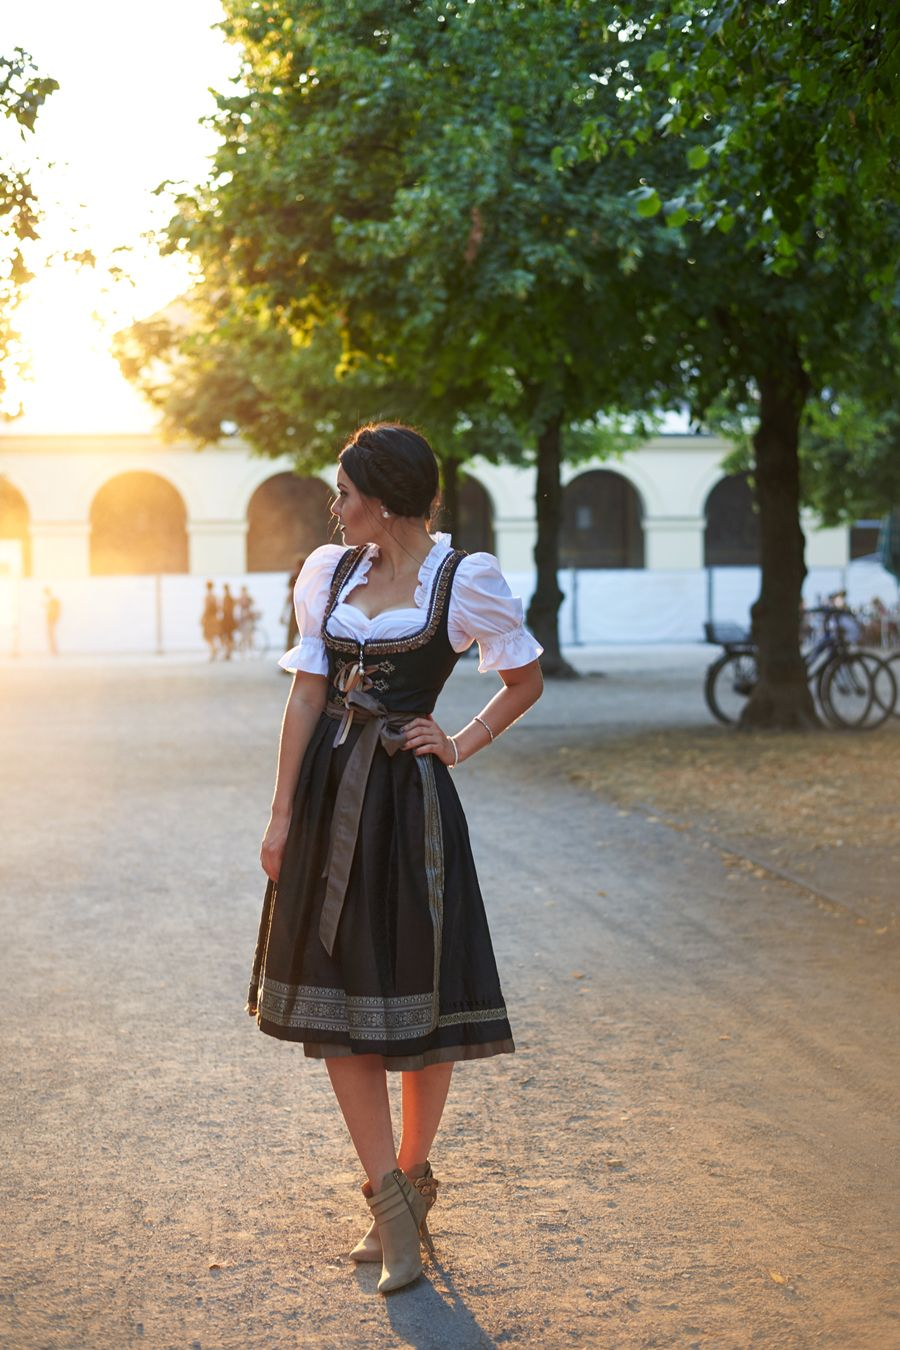 fashion blog fashionblogger m nchen deutschland munich oktoberfest wiesn dirndl outfit blogger. Black Bedroom Furniture Sets. Home Design Ideas